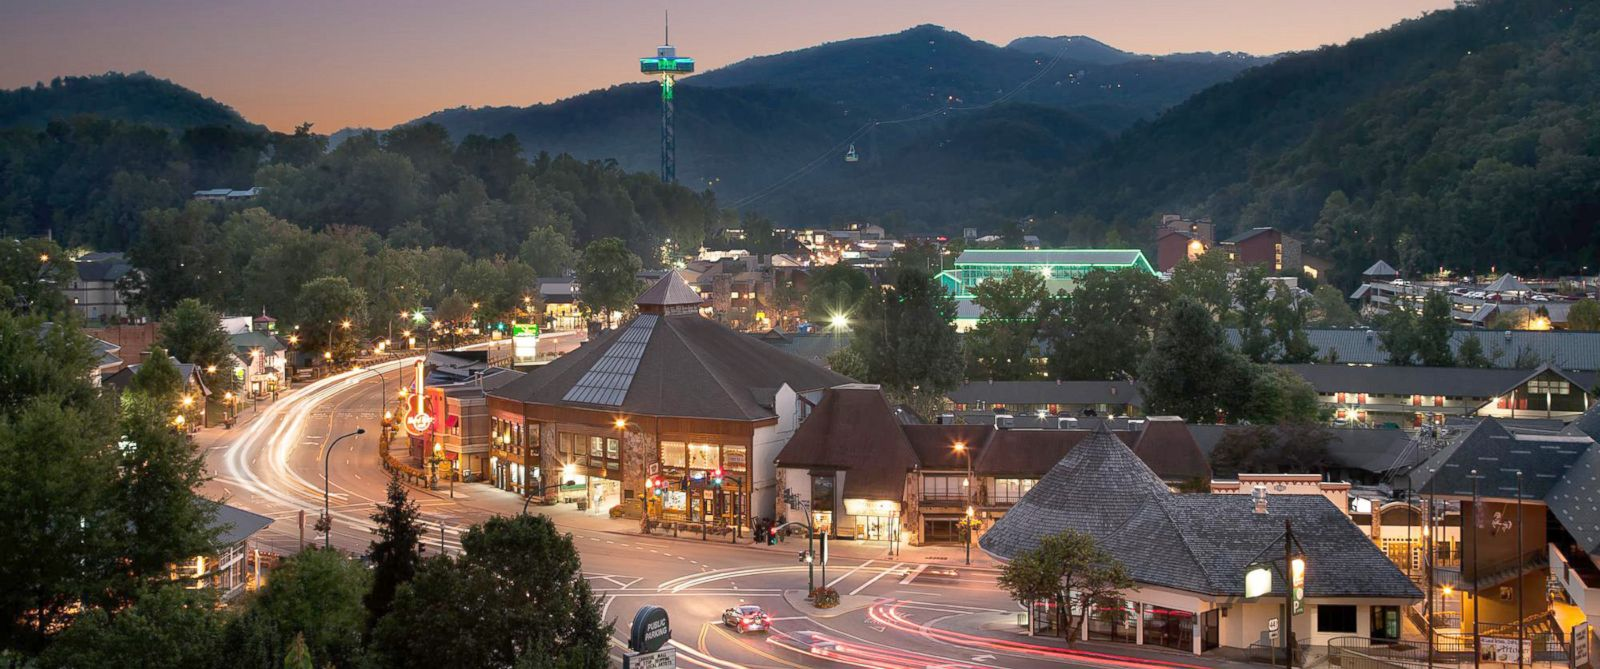 PHOTO: Gatlinburg in Tennessees Great Smoky Mountains is named the top U.S. destination on the rise by TripAdvisor.